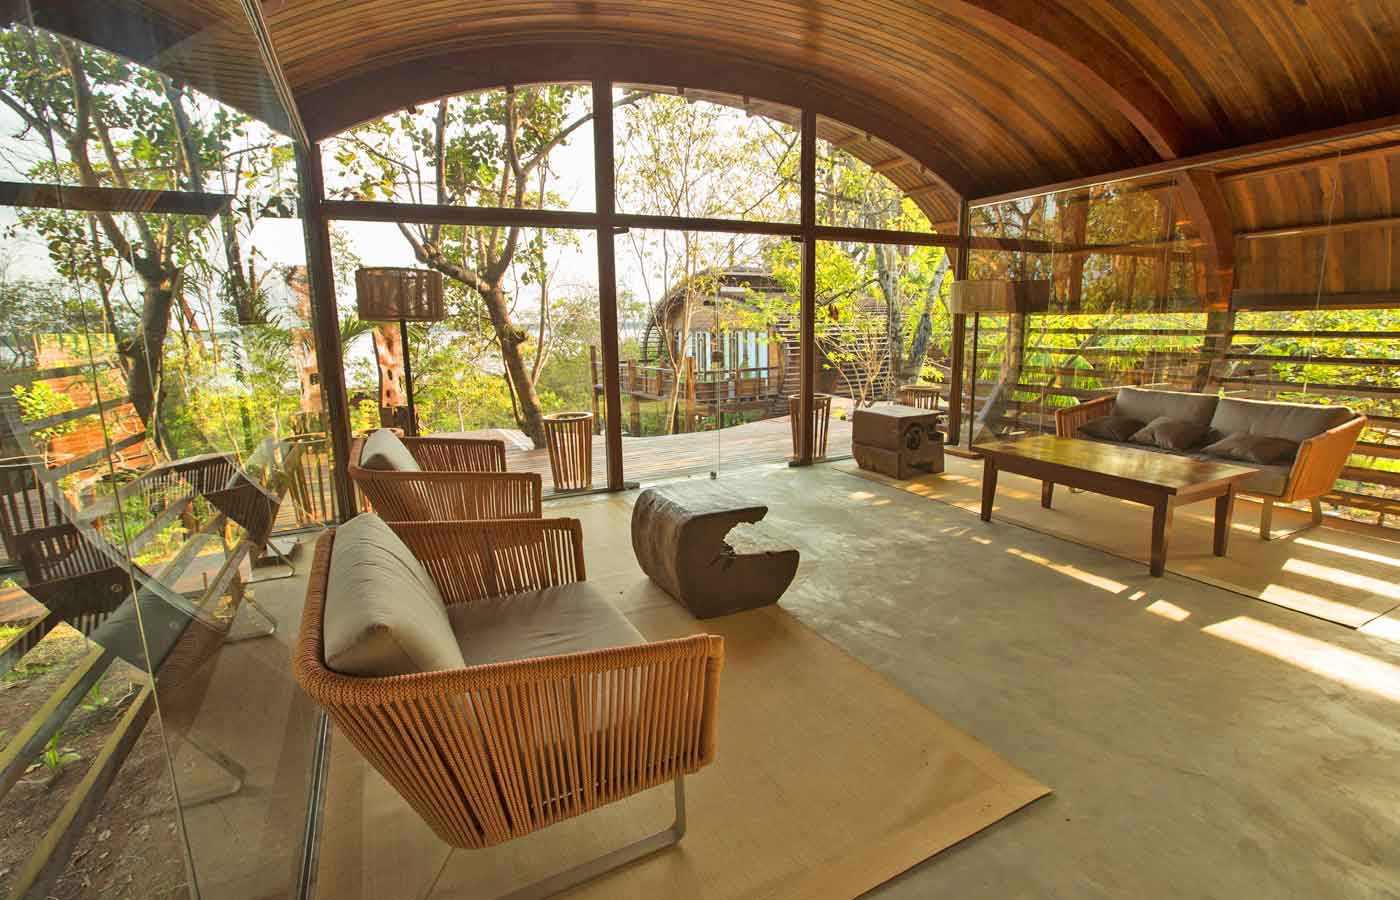 Mirante do Gaviao - Luxury Lodge in the Amazon in Brazil